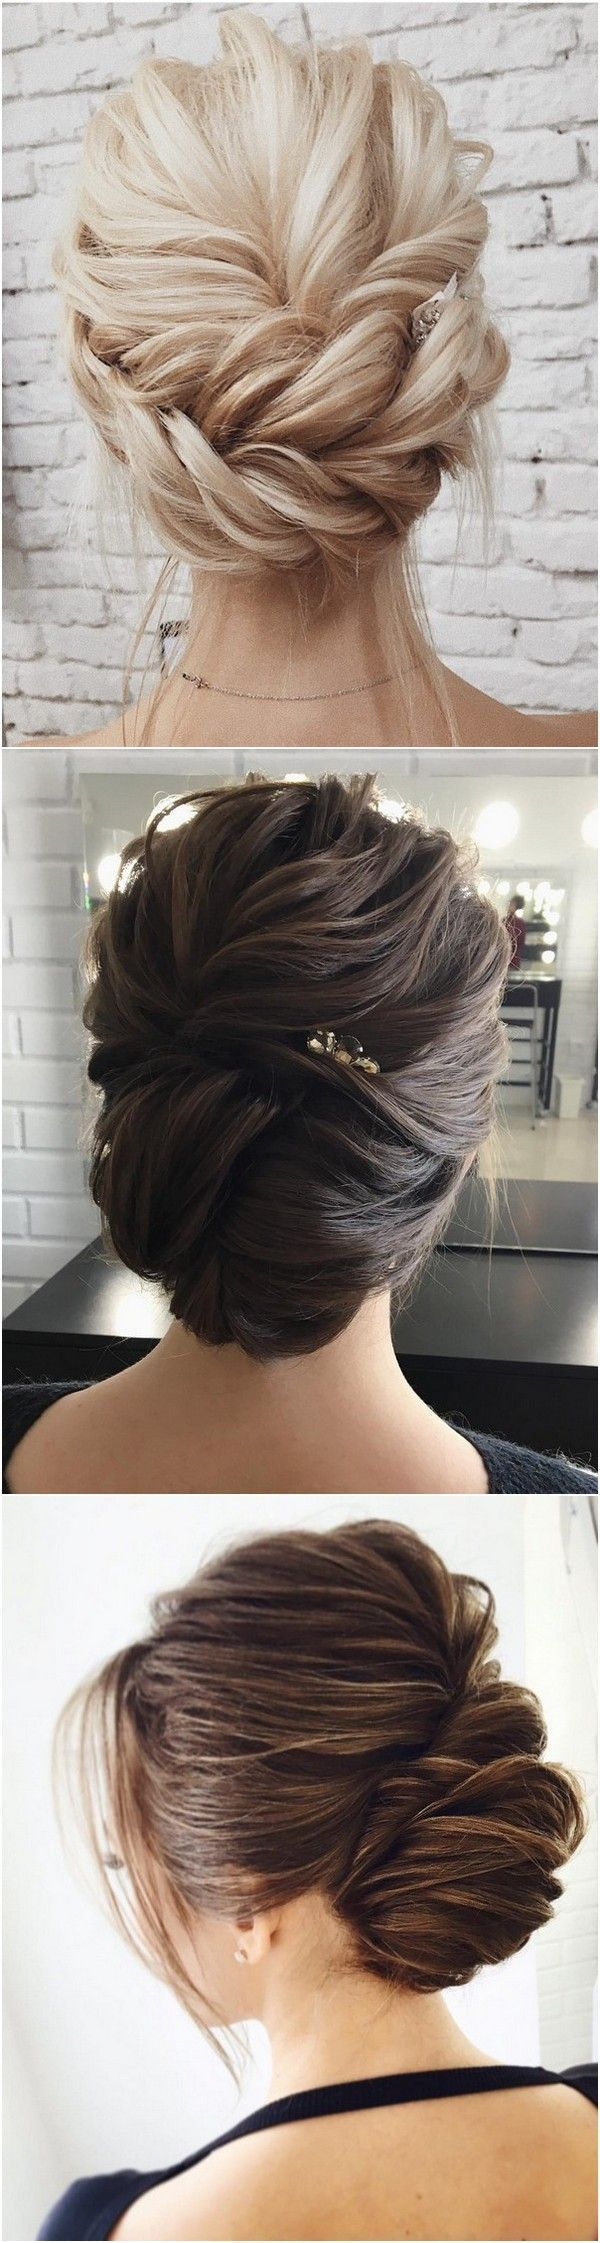 elegant updos wedding hairstyles, #elegante #douch hairstyles #wedding hairstyles … – Frisuren Mittellanges Haar